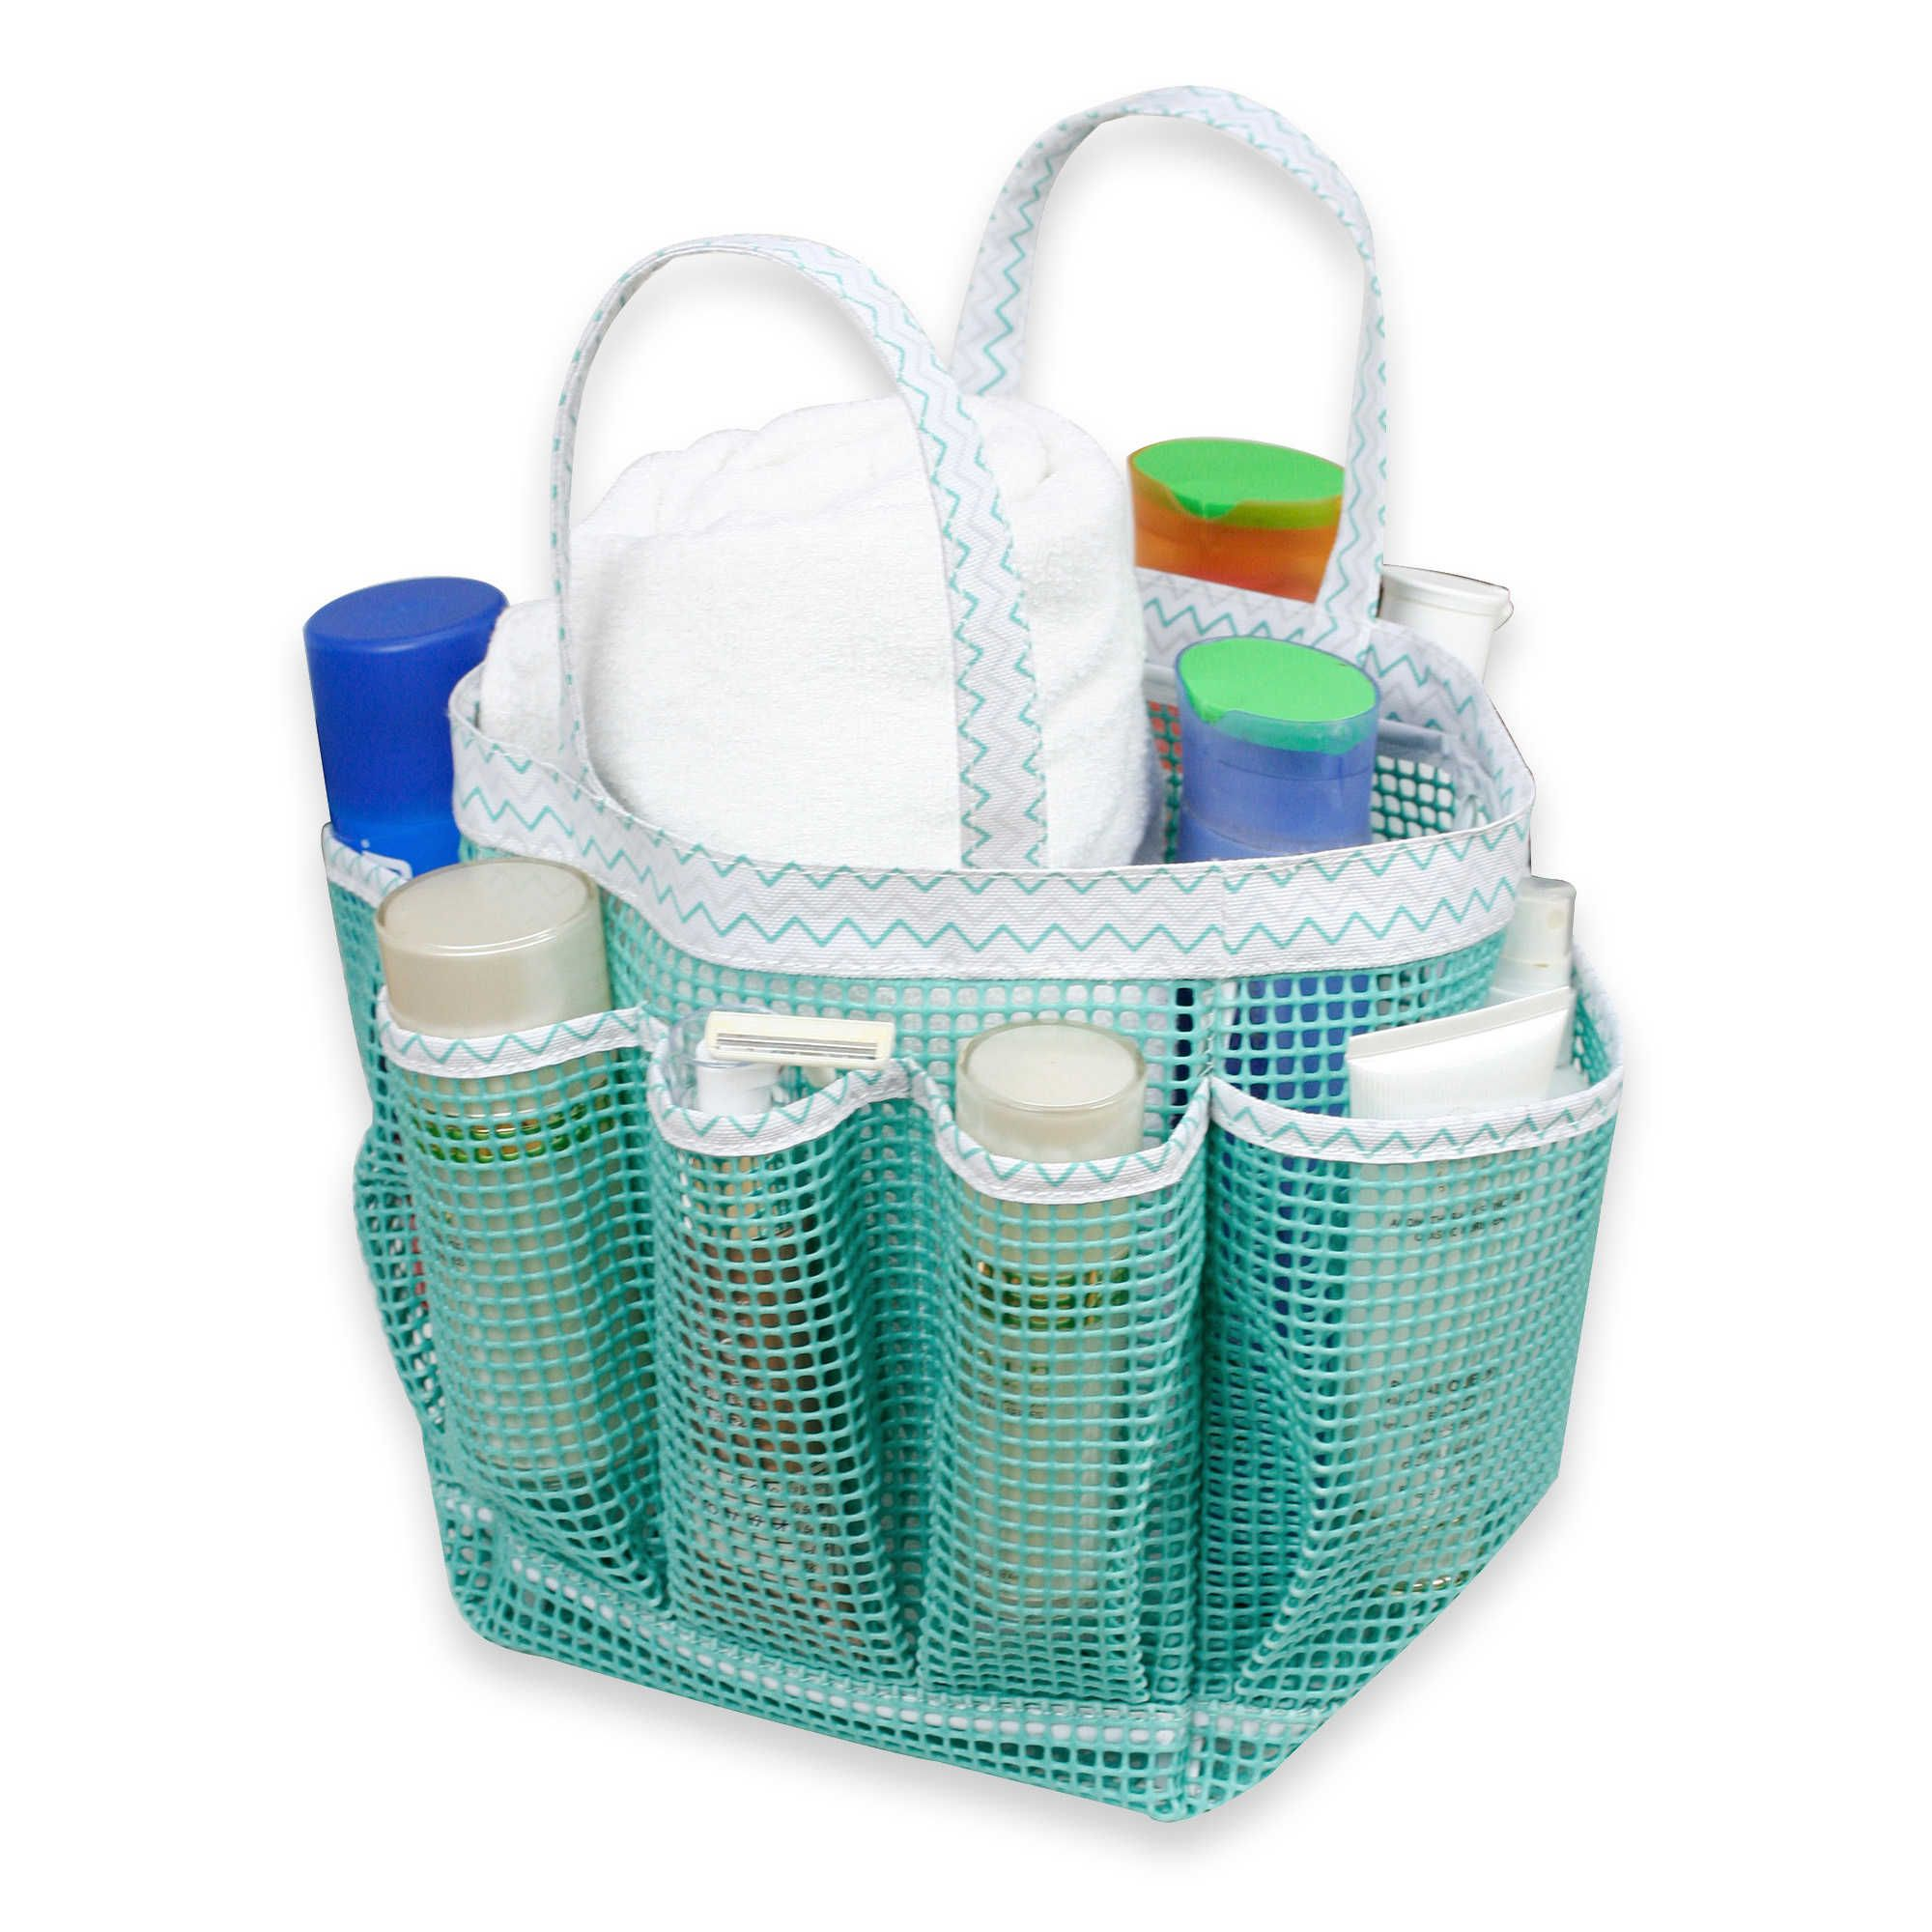 Mesh Shower Tote in Teal and White- Bed Bath & Beyond | College Wish ...